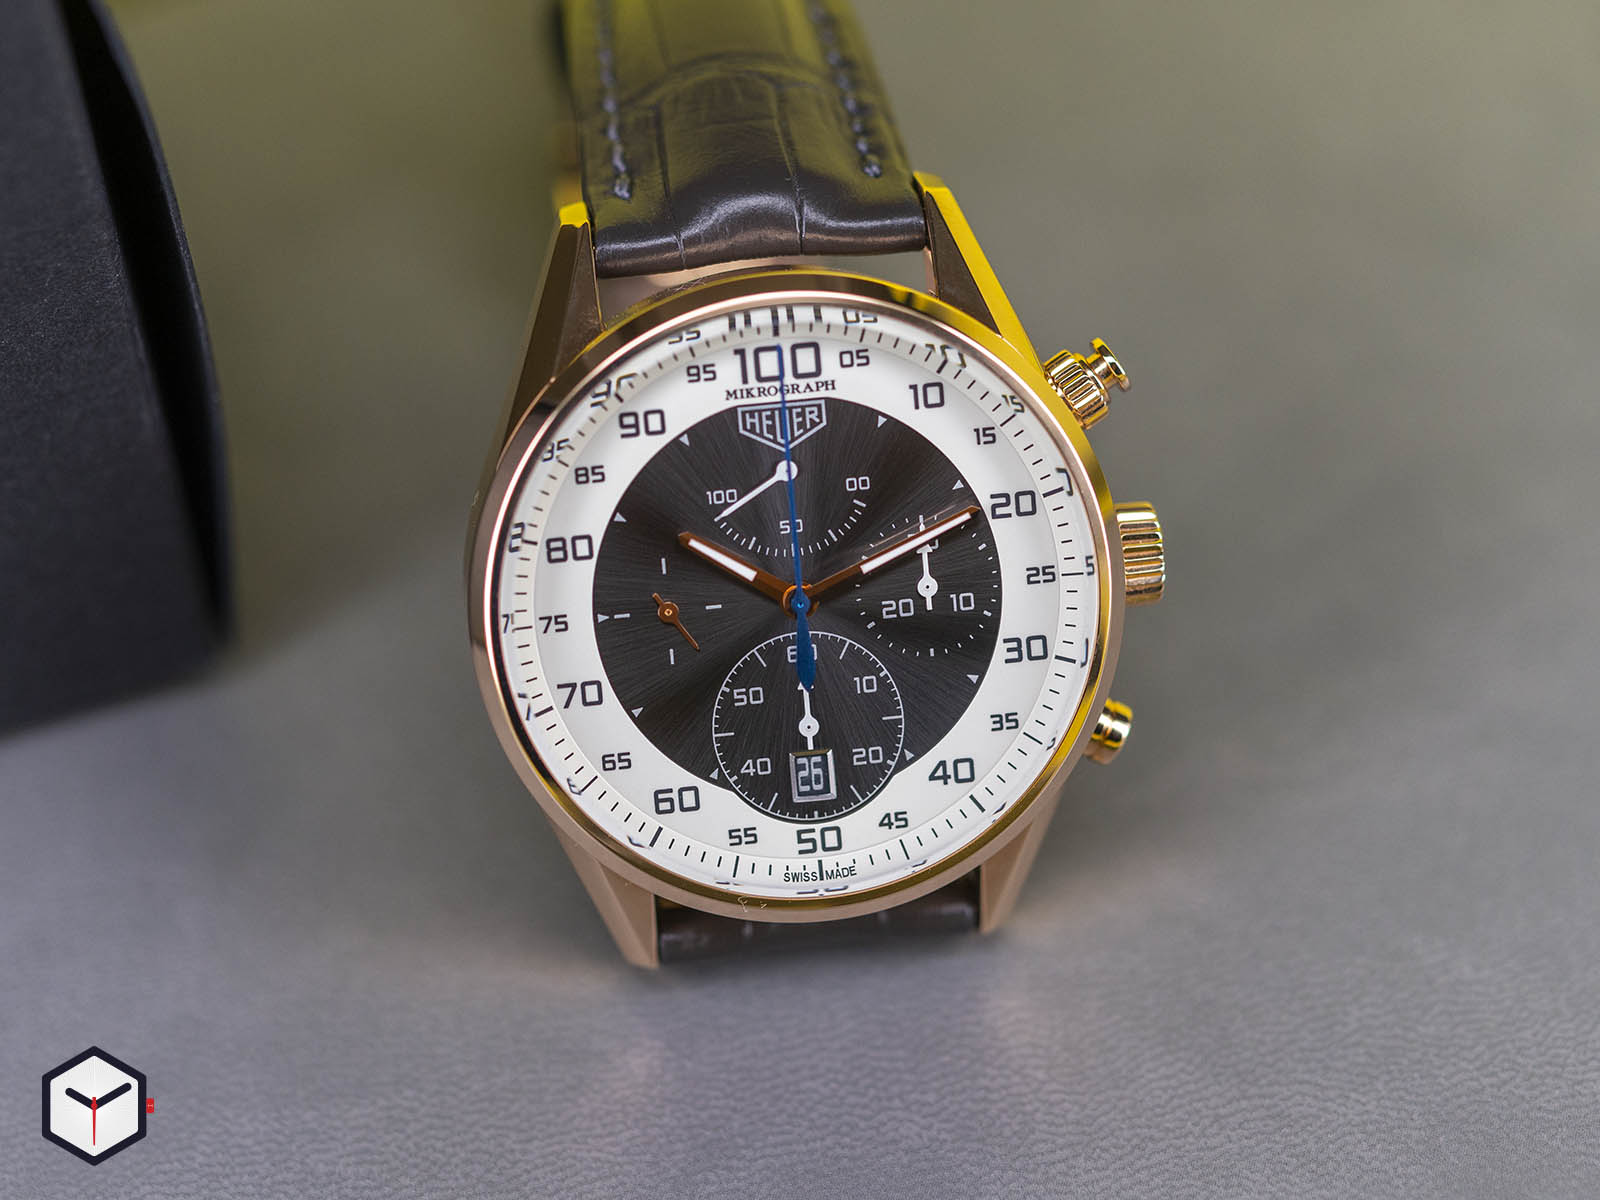 tag-heuer-carrera-mikrograph-1-100th-of-a-second-chronograph-2.jpg